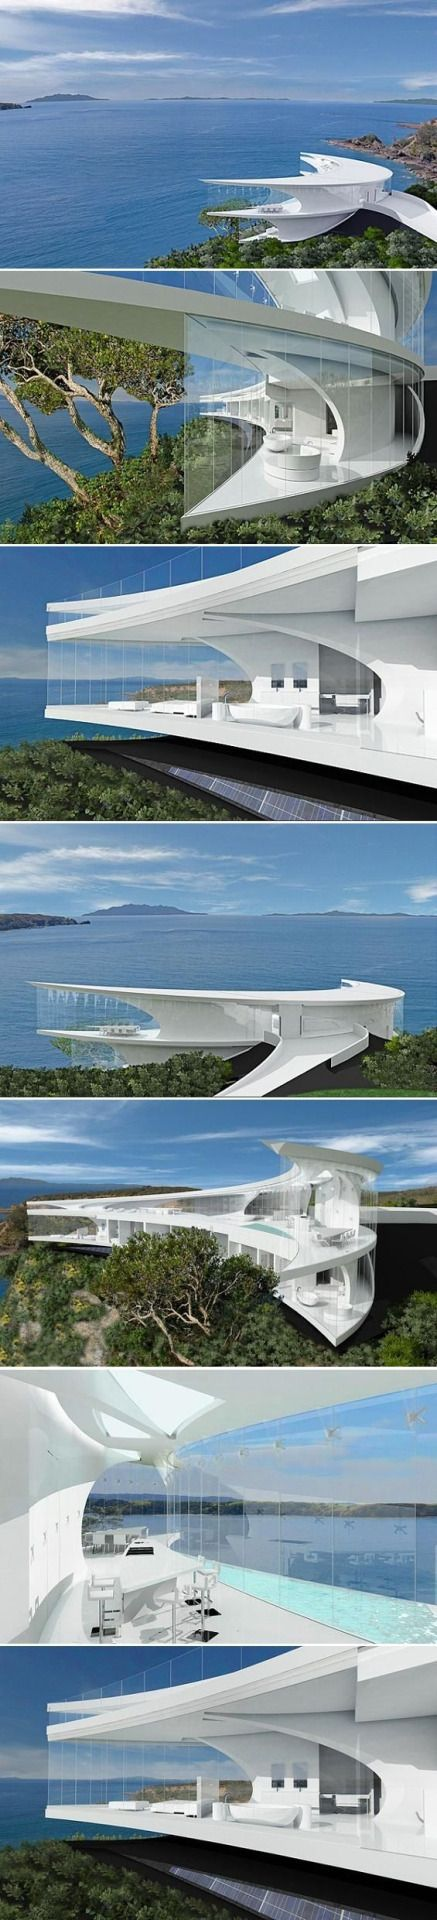 1055 best Chitecture images on Pinterest | House design ...